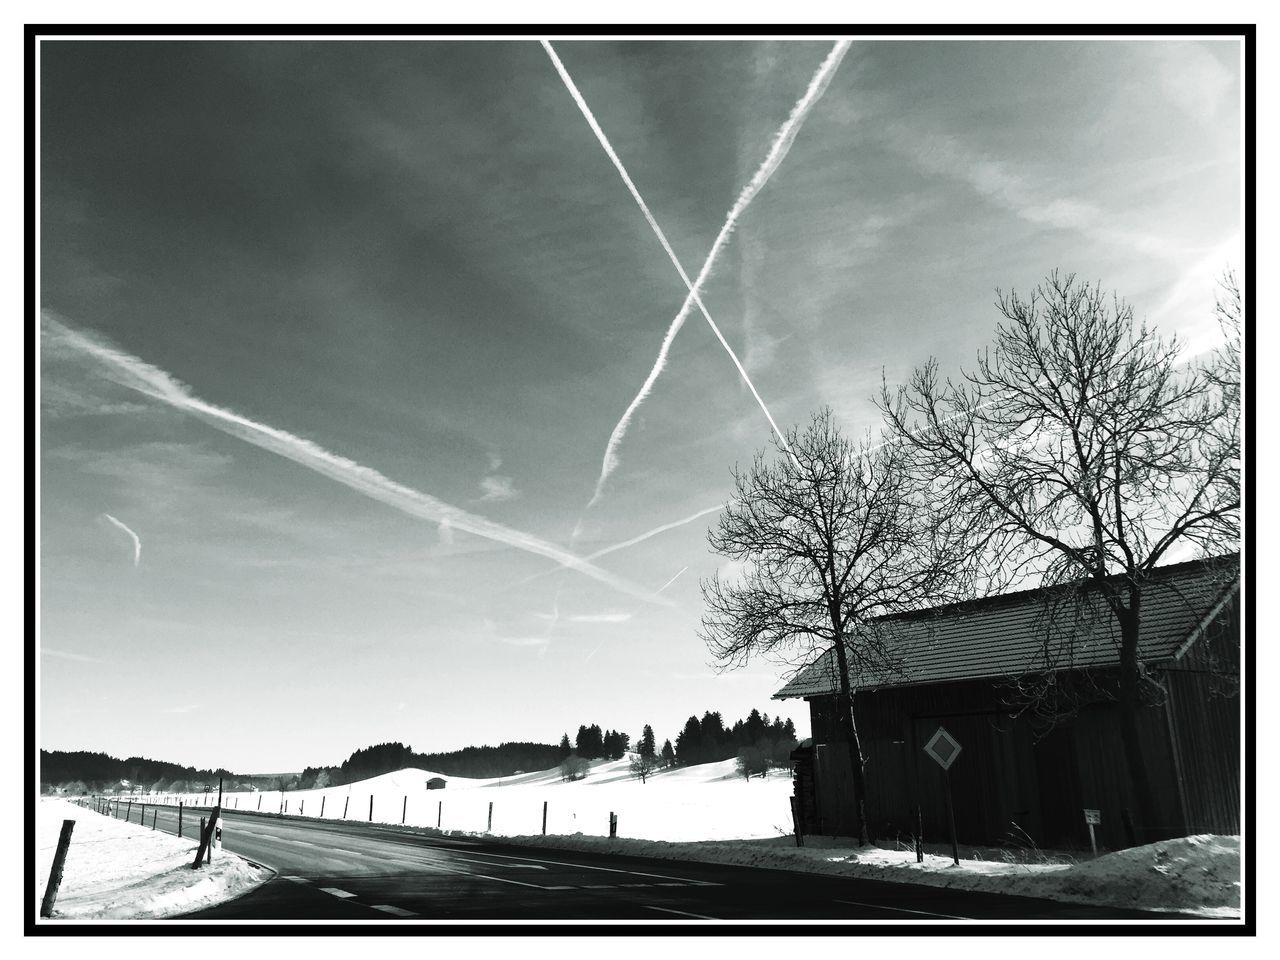 sky, vapor trail, tree, bare tree, built structure, architecture, outdoors, building exterior, no people, day, contrail, low angle view, scenics, nature, beauty in nature